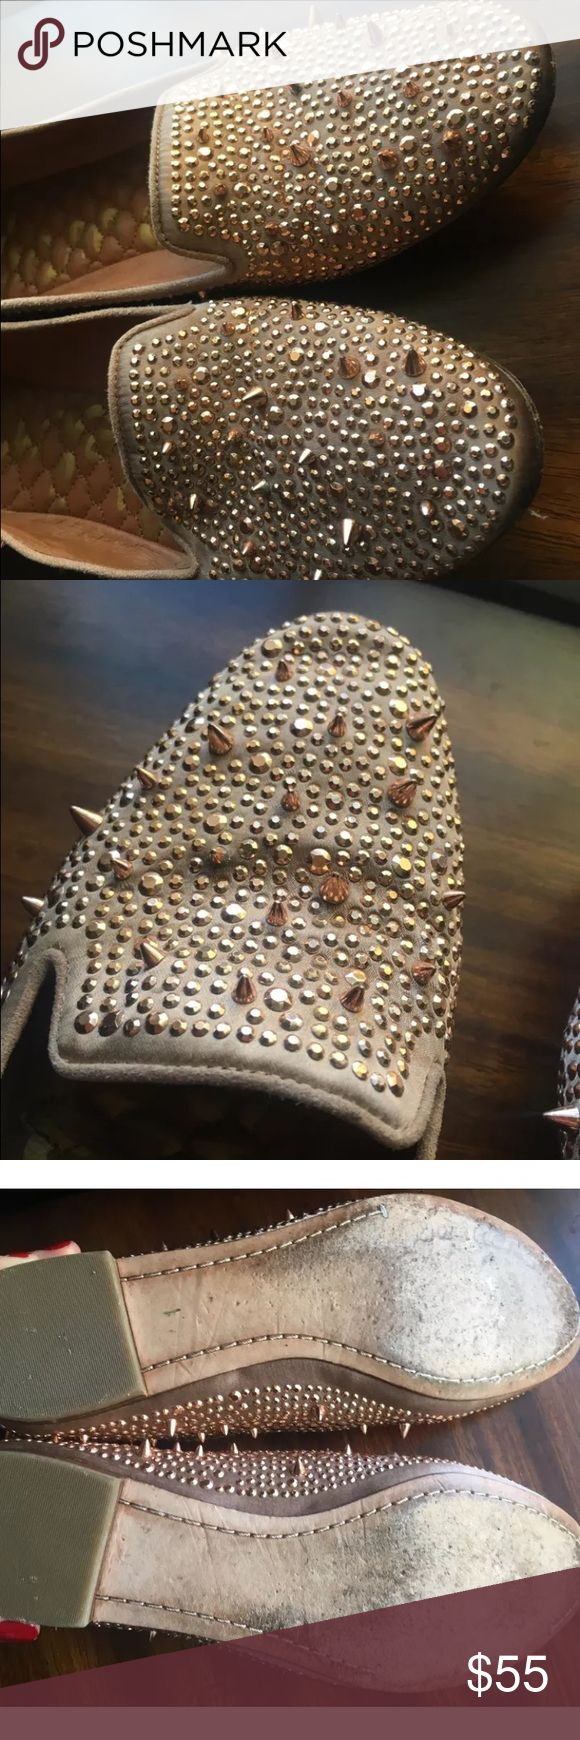 Sam Edelman Gold Studded Loafers Used but in good condition Sam Edelman Loafers. Covered in gold spikes with quilted inside. Bottom is worn but tops in good condition. Worn by Ashley Tisdale. Sam Edelman Shoes Flats & Loafers